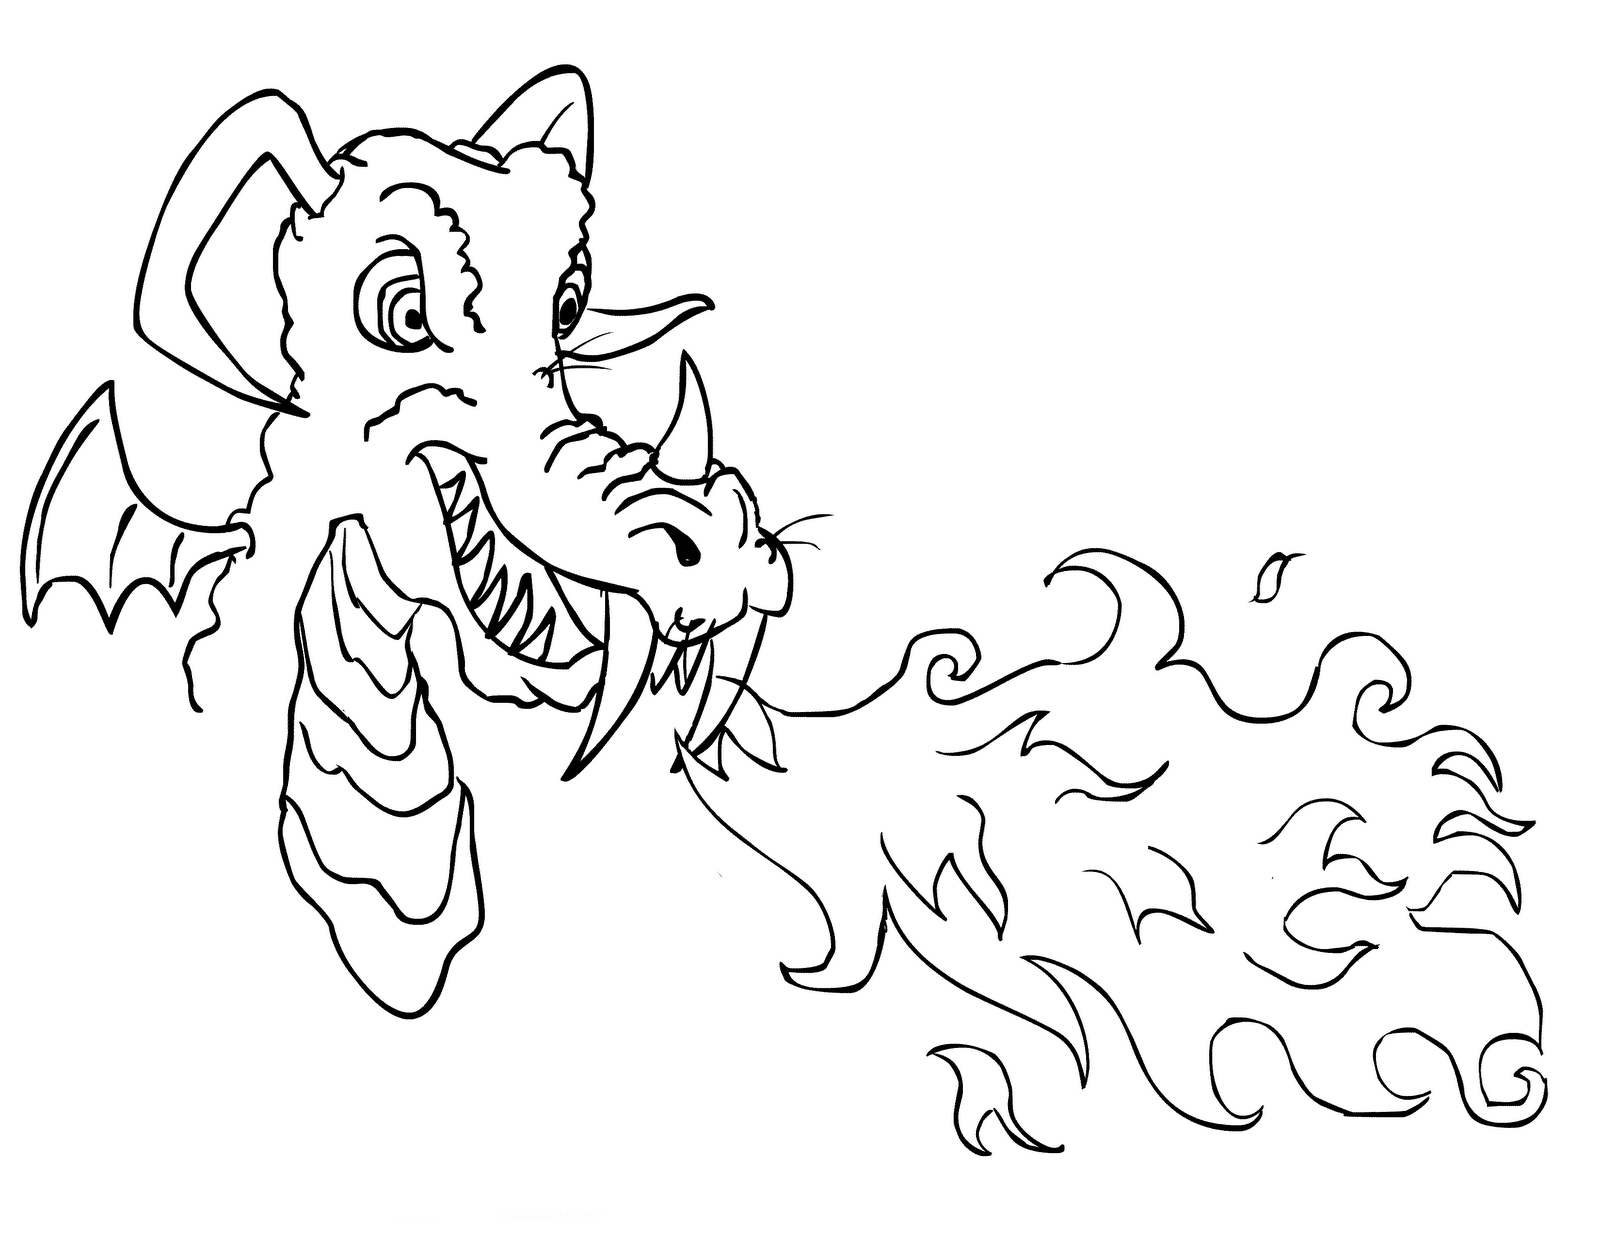 Dragon Coloring Pages Realistic Dragon Coloring Page Coloring Pages Detailed Coloring Pages